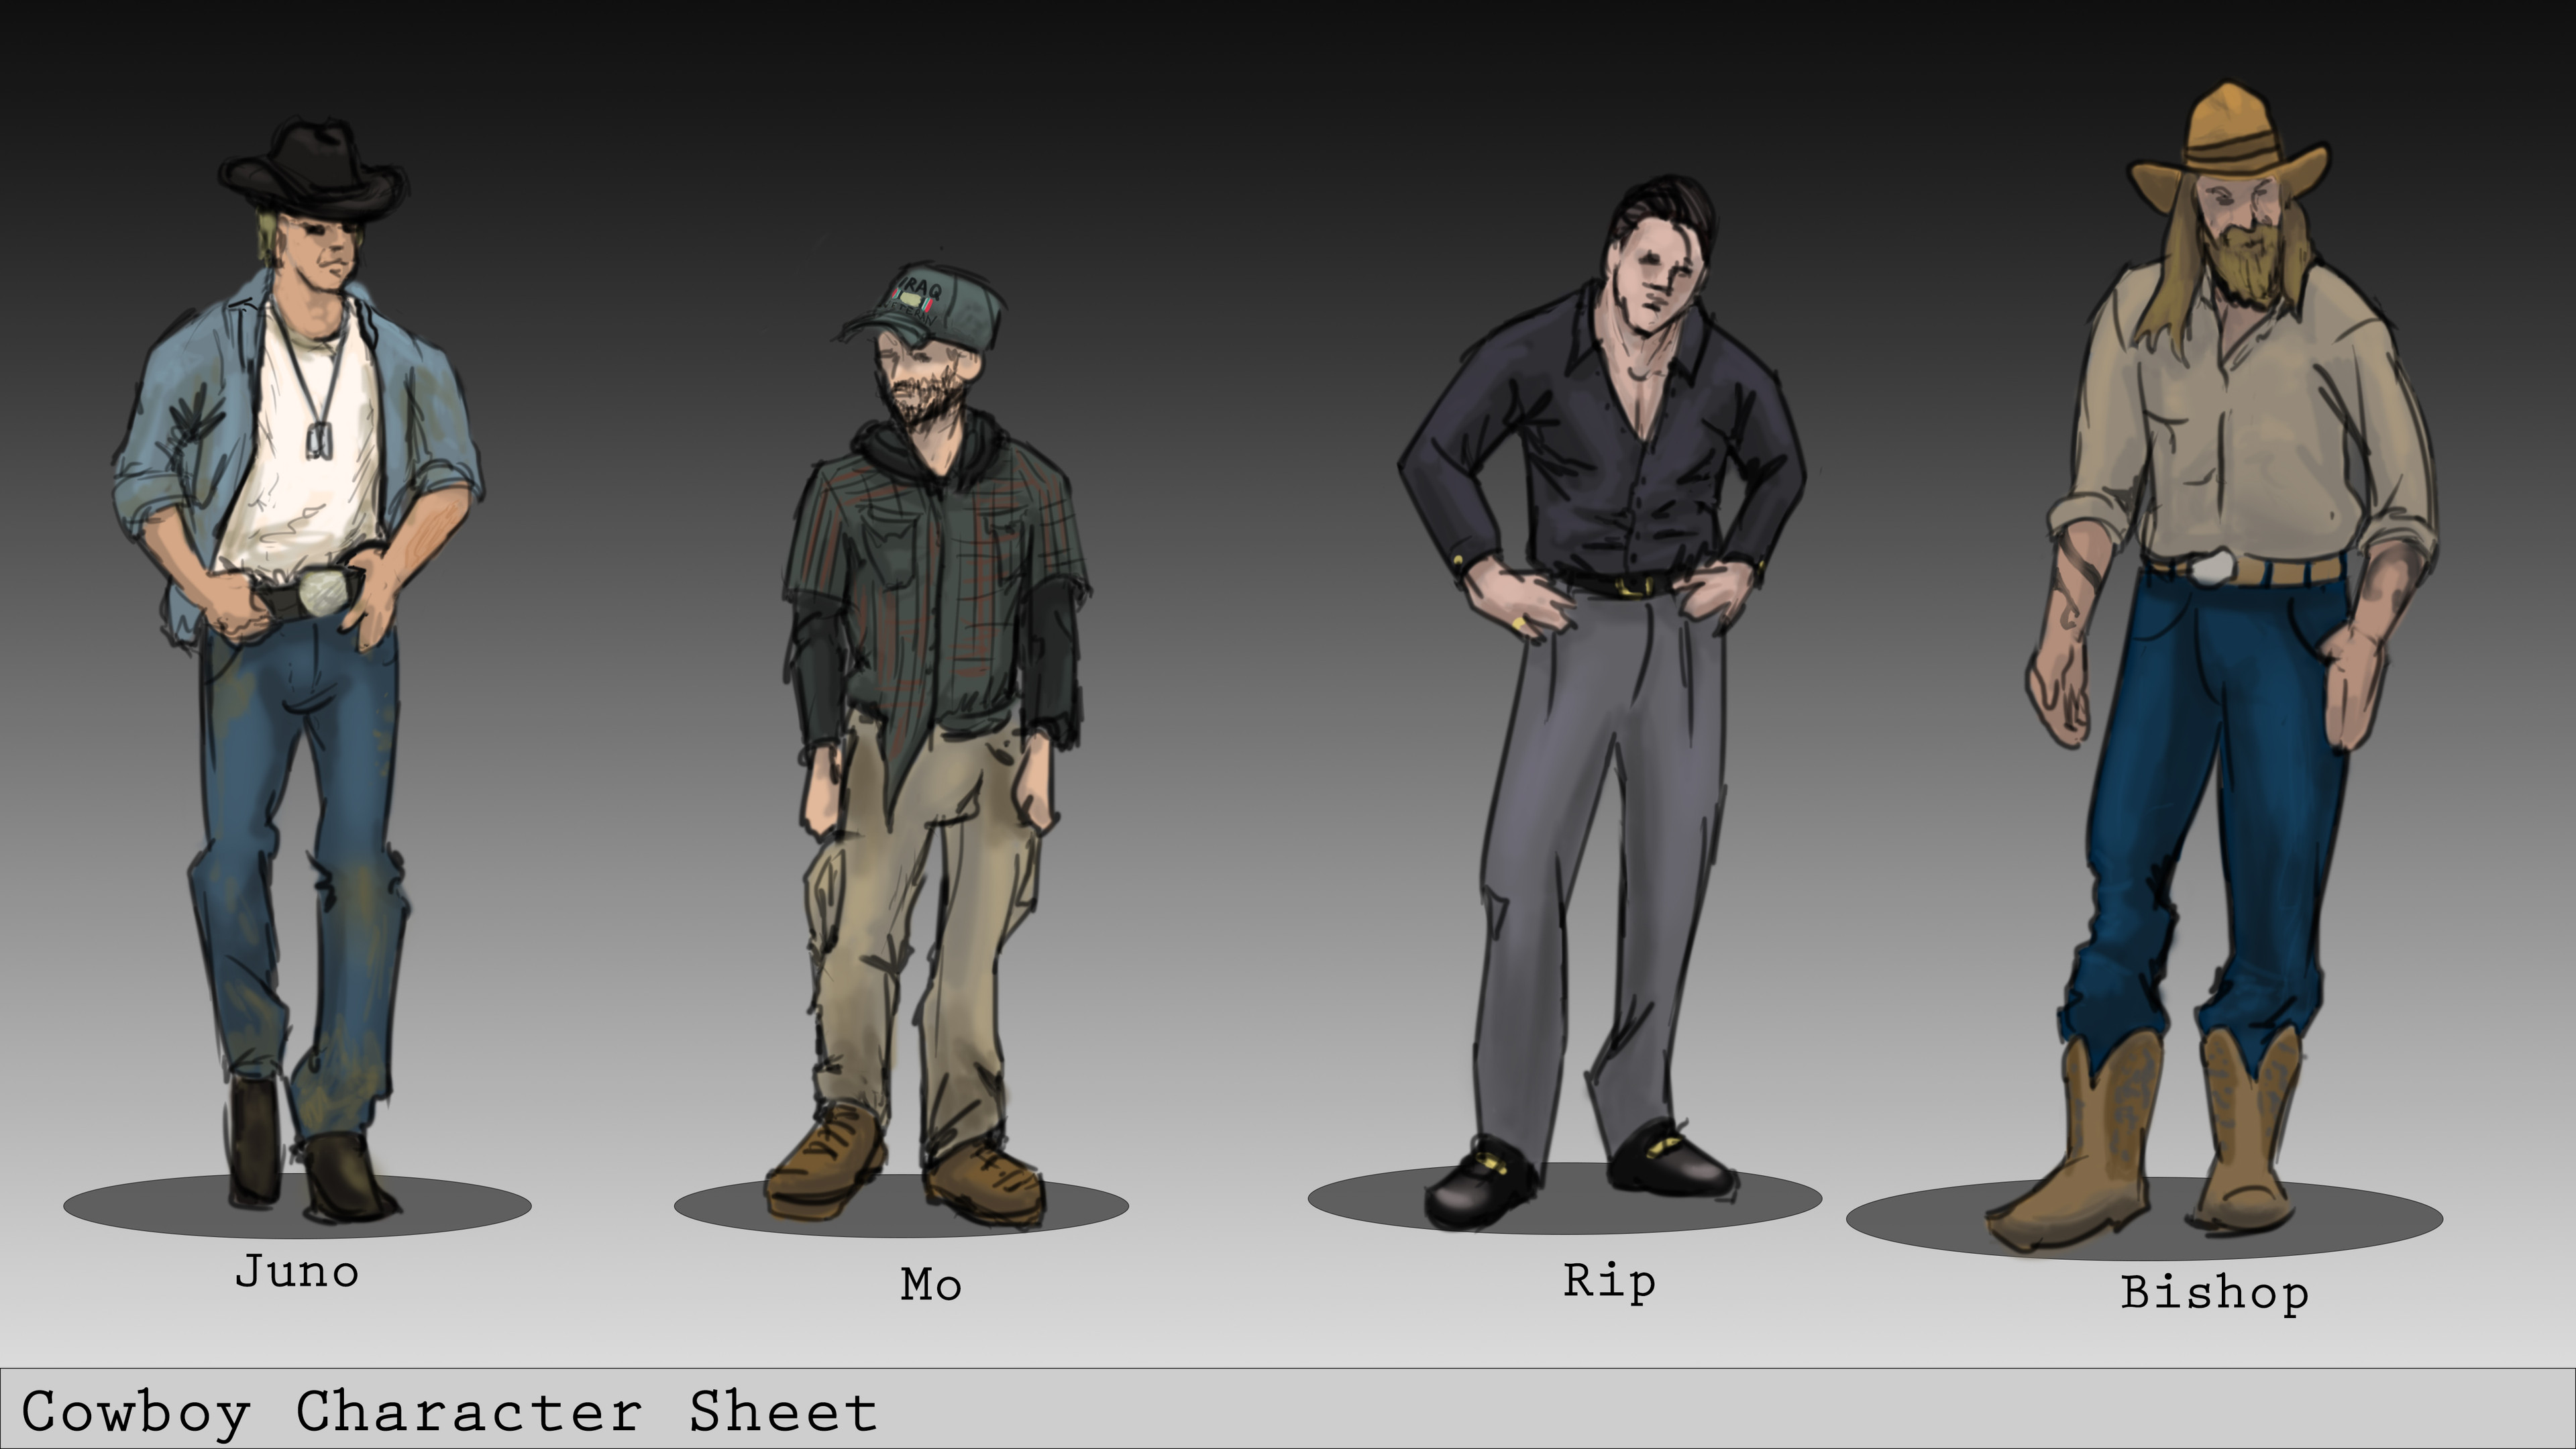 Character concepts for Cowboy